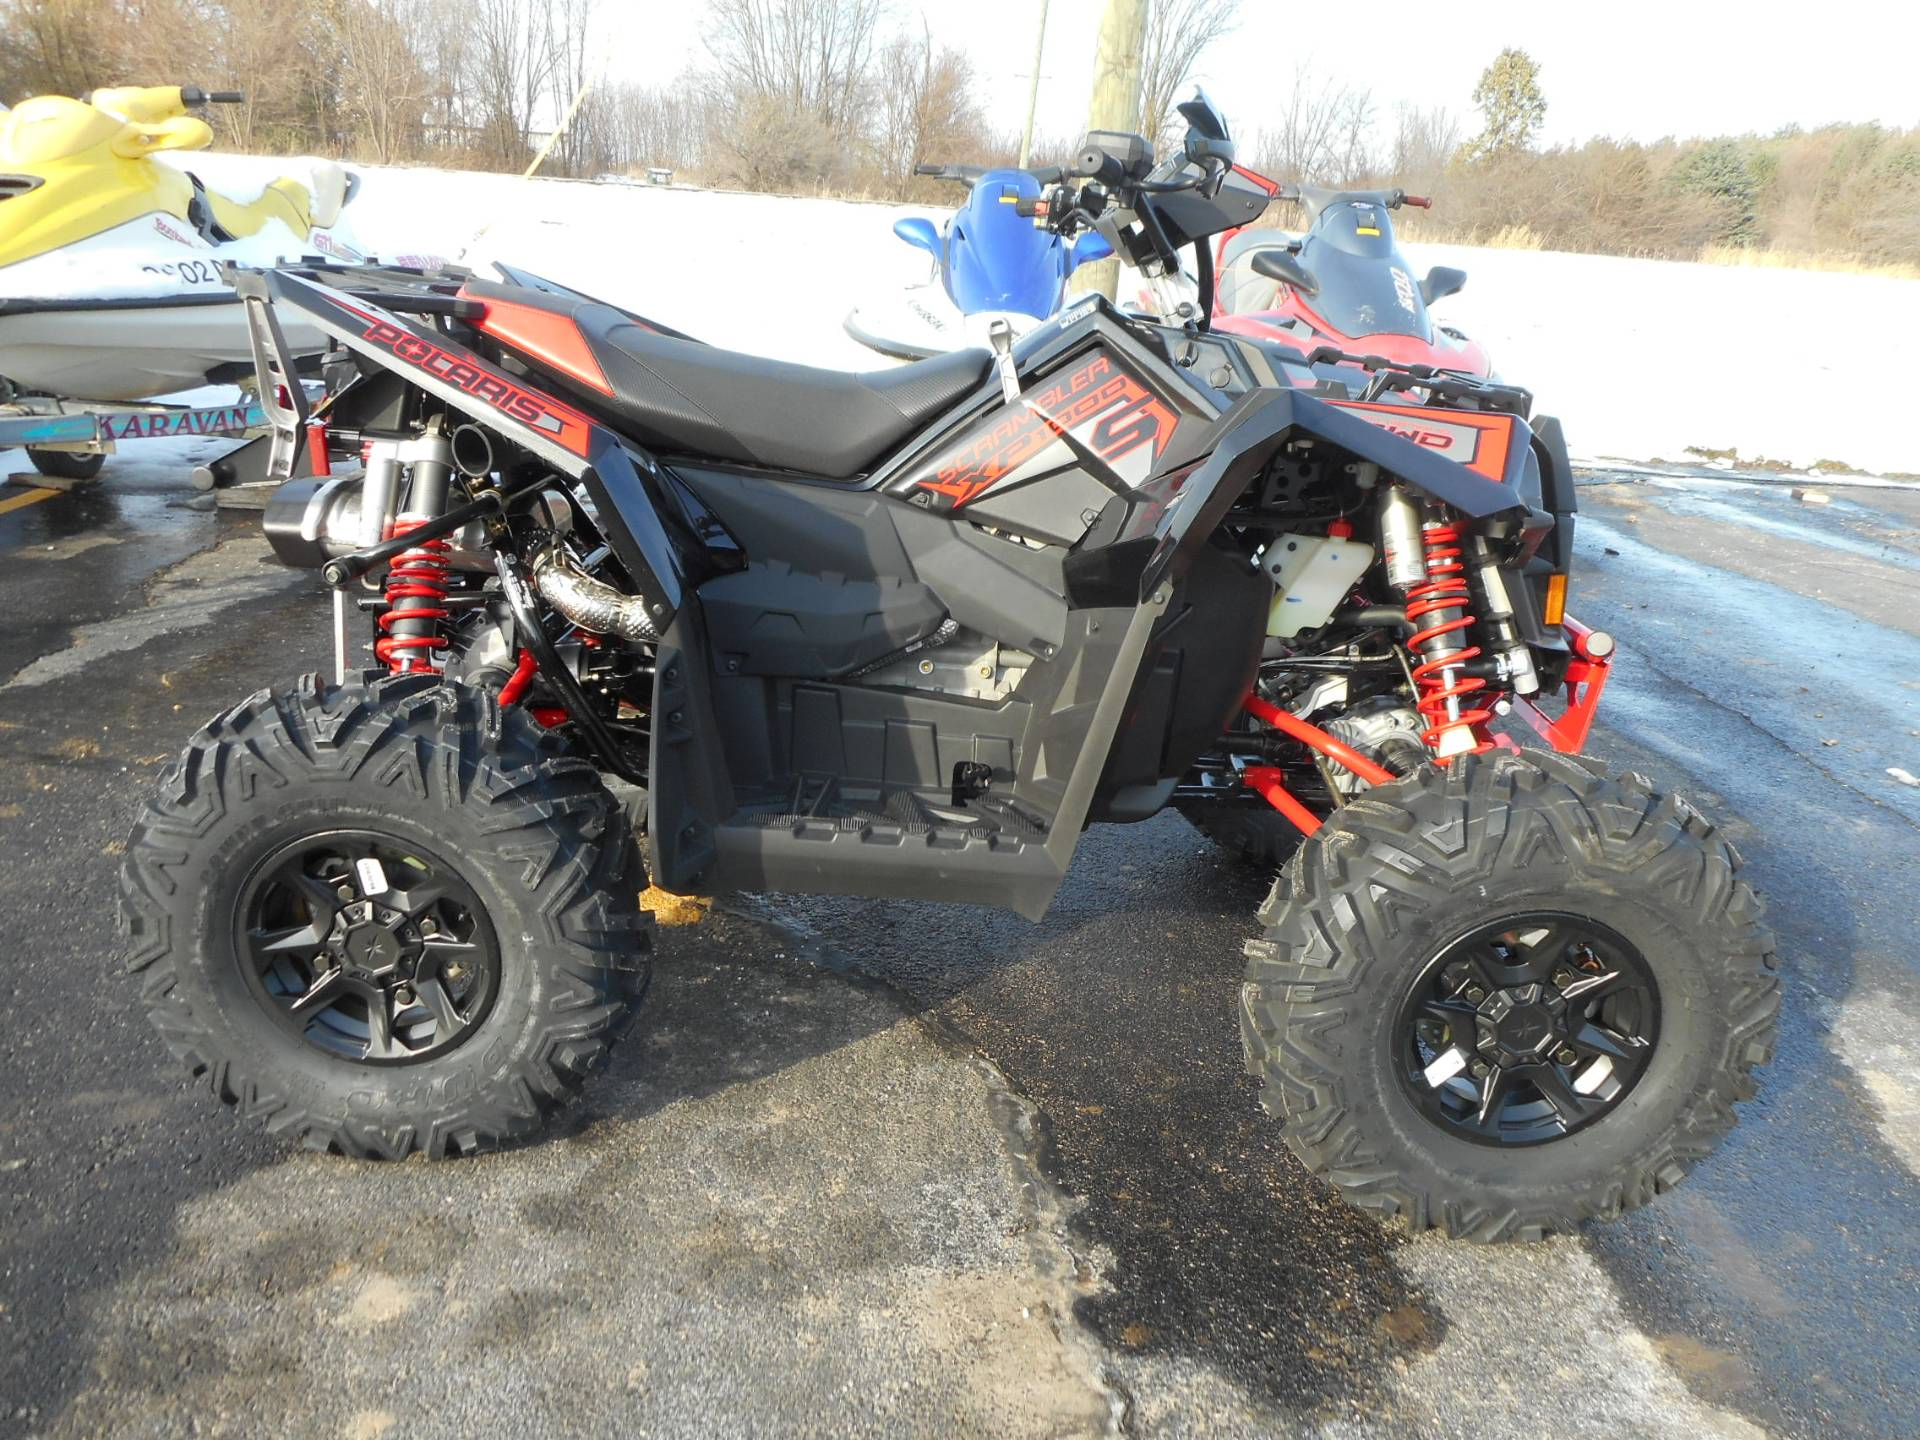 2020 Polaris Scrambler XP 1000 S in Belvidere, Illinois - Photo 1